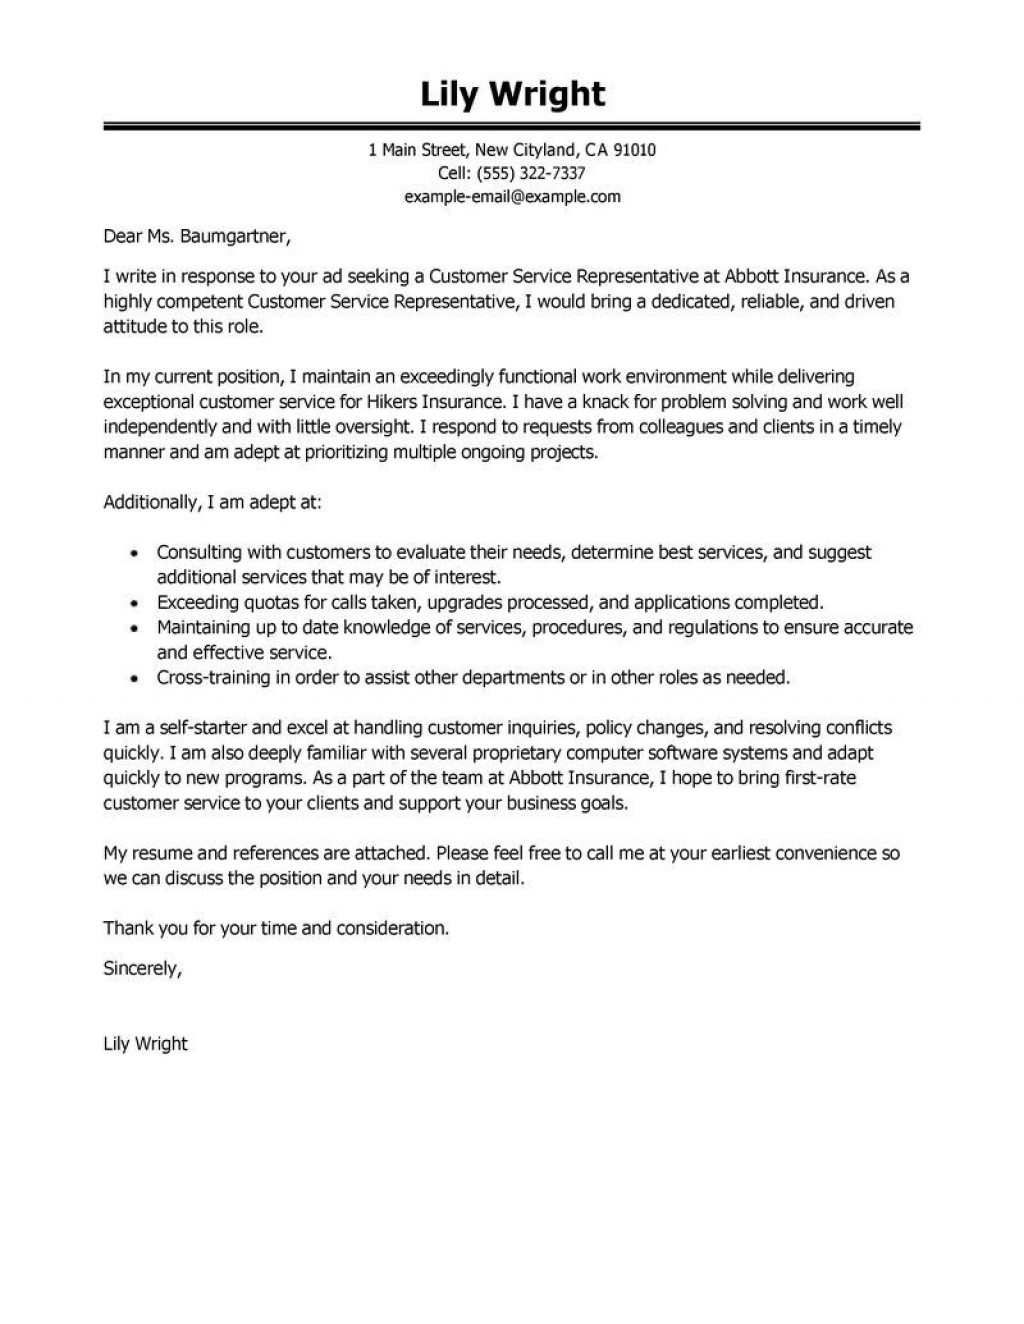 003 Essay Example Being Leader 2080959786 Imposing A Great College Qualities Of Pdf Large